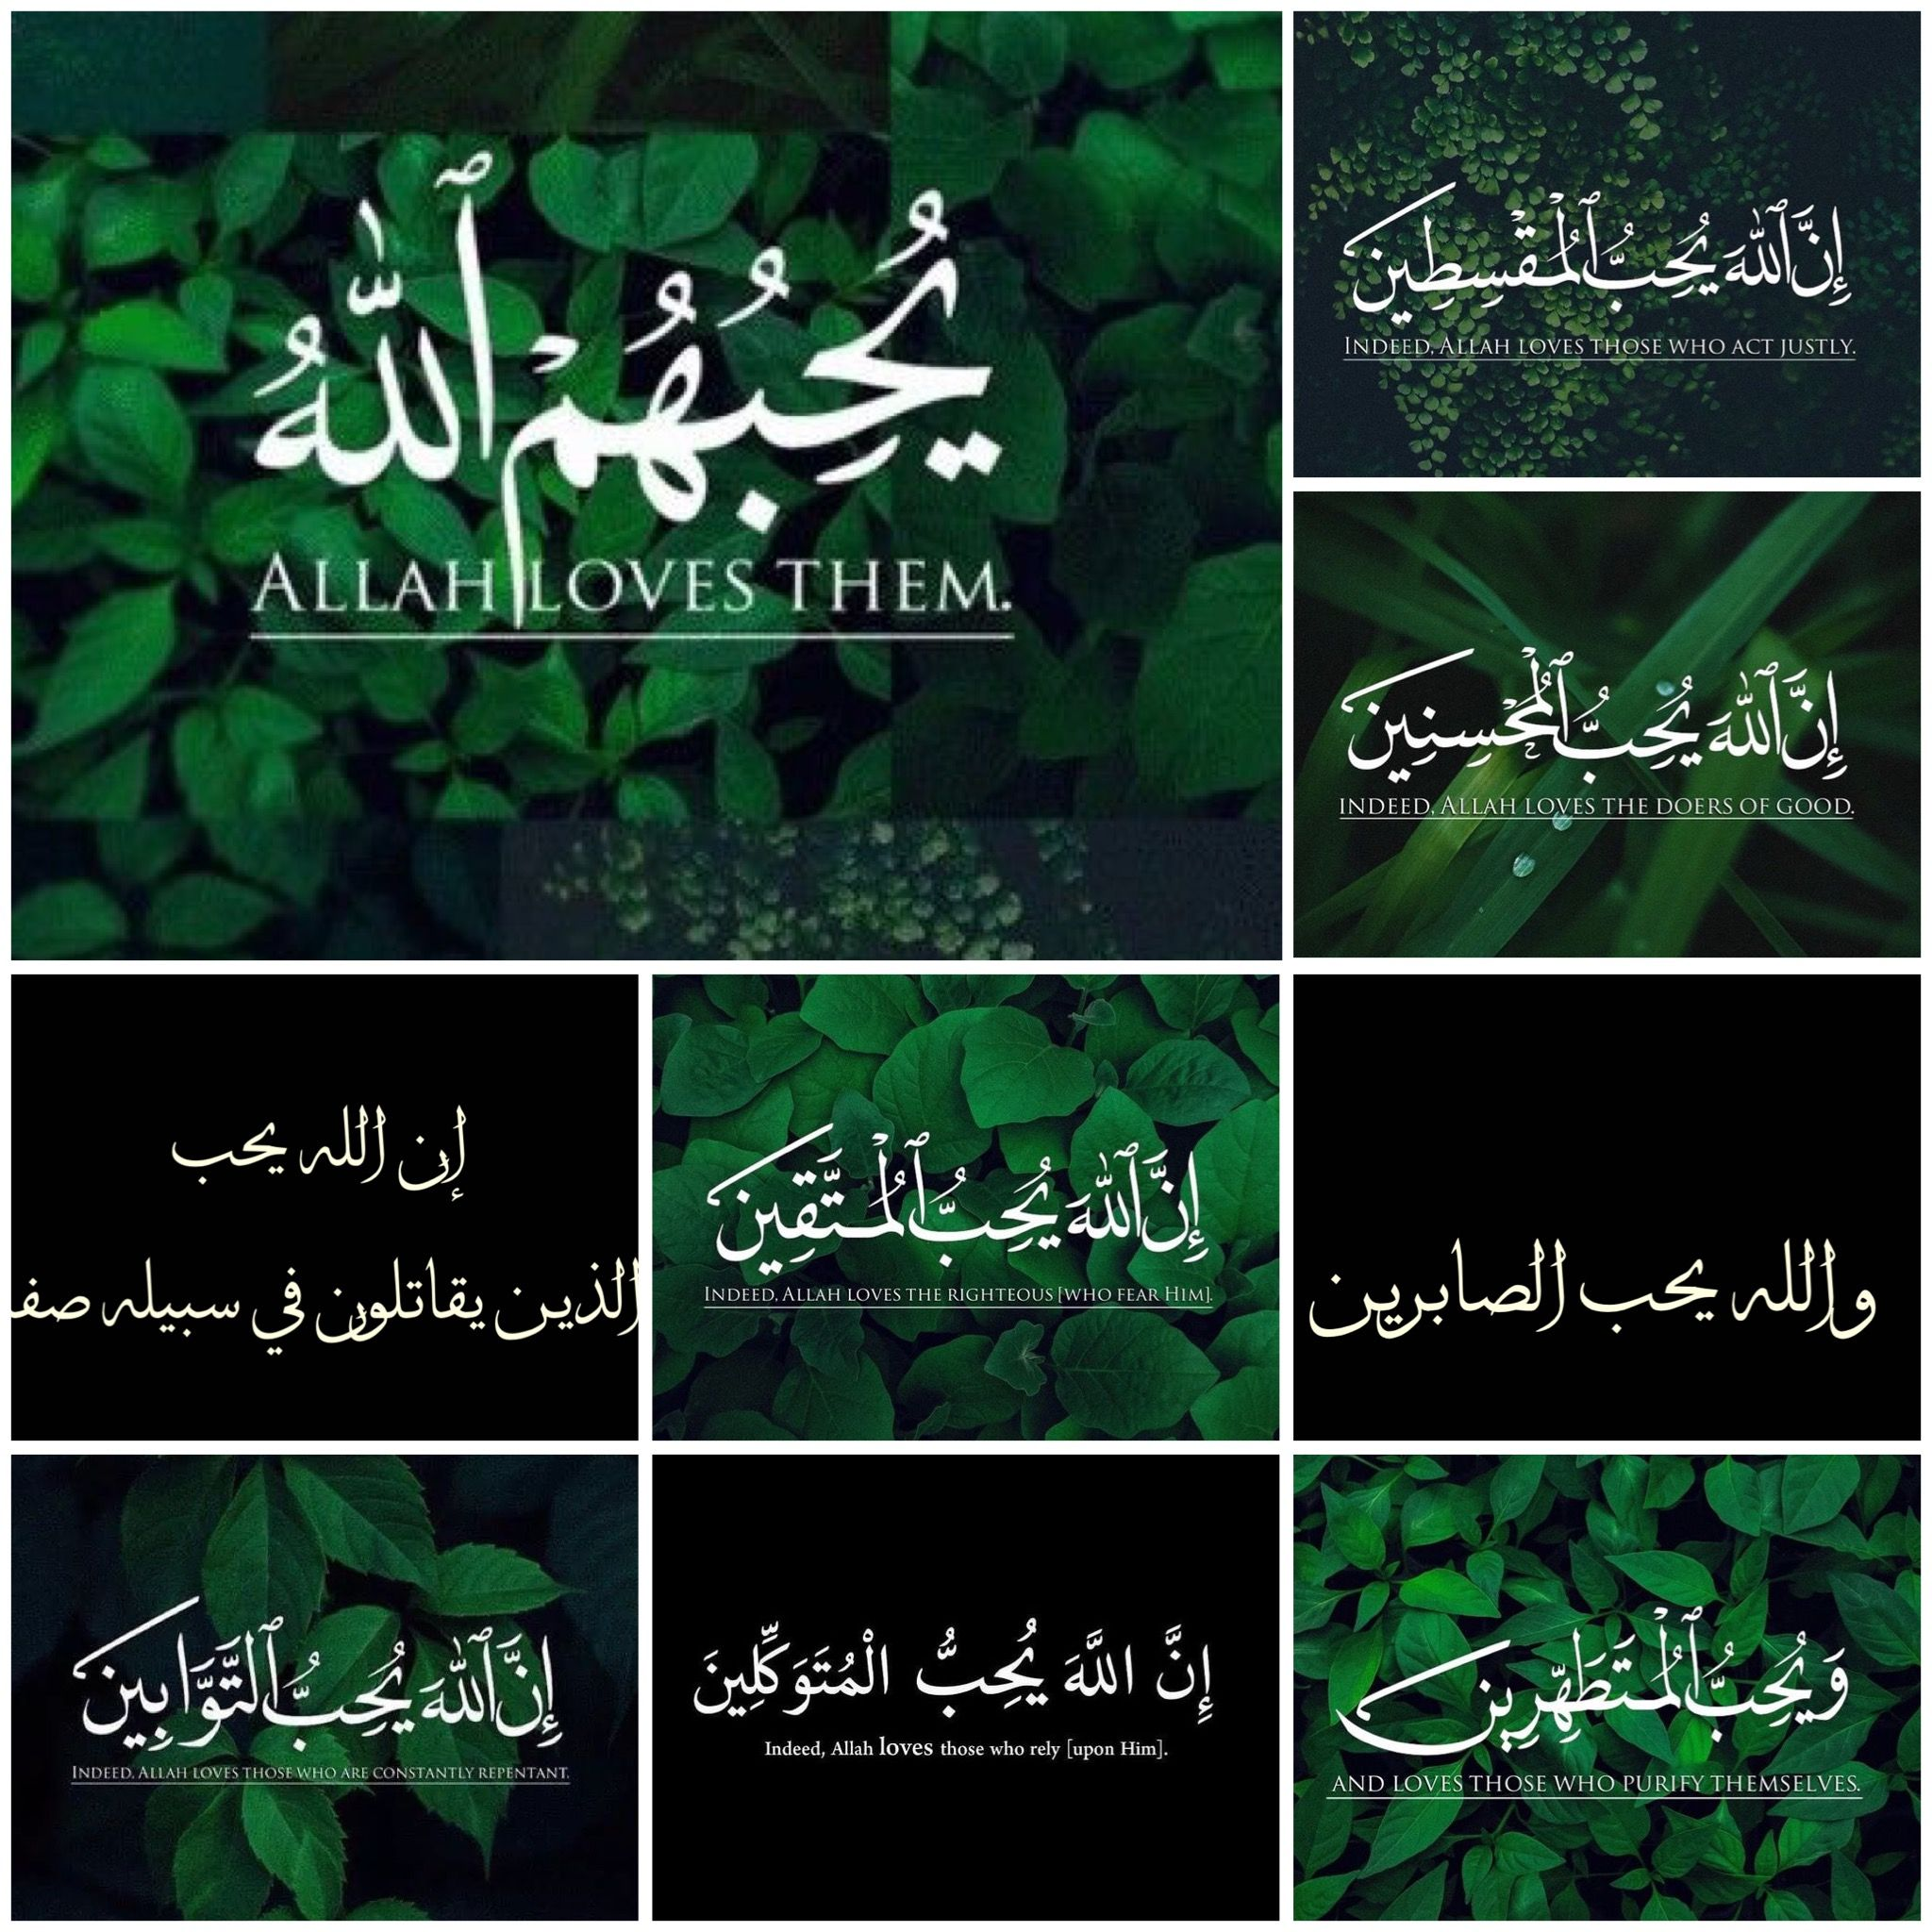 Pin By Elaf On مع الله Quran Quotes Islamic Messages Islamic Quotes